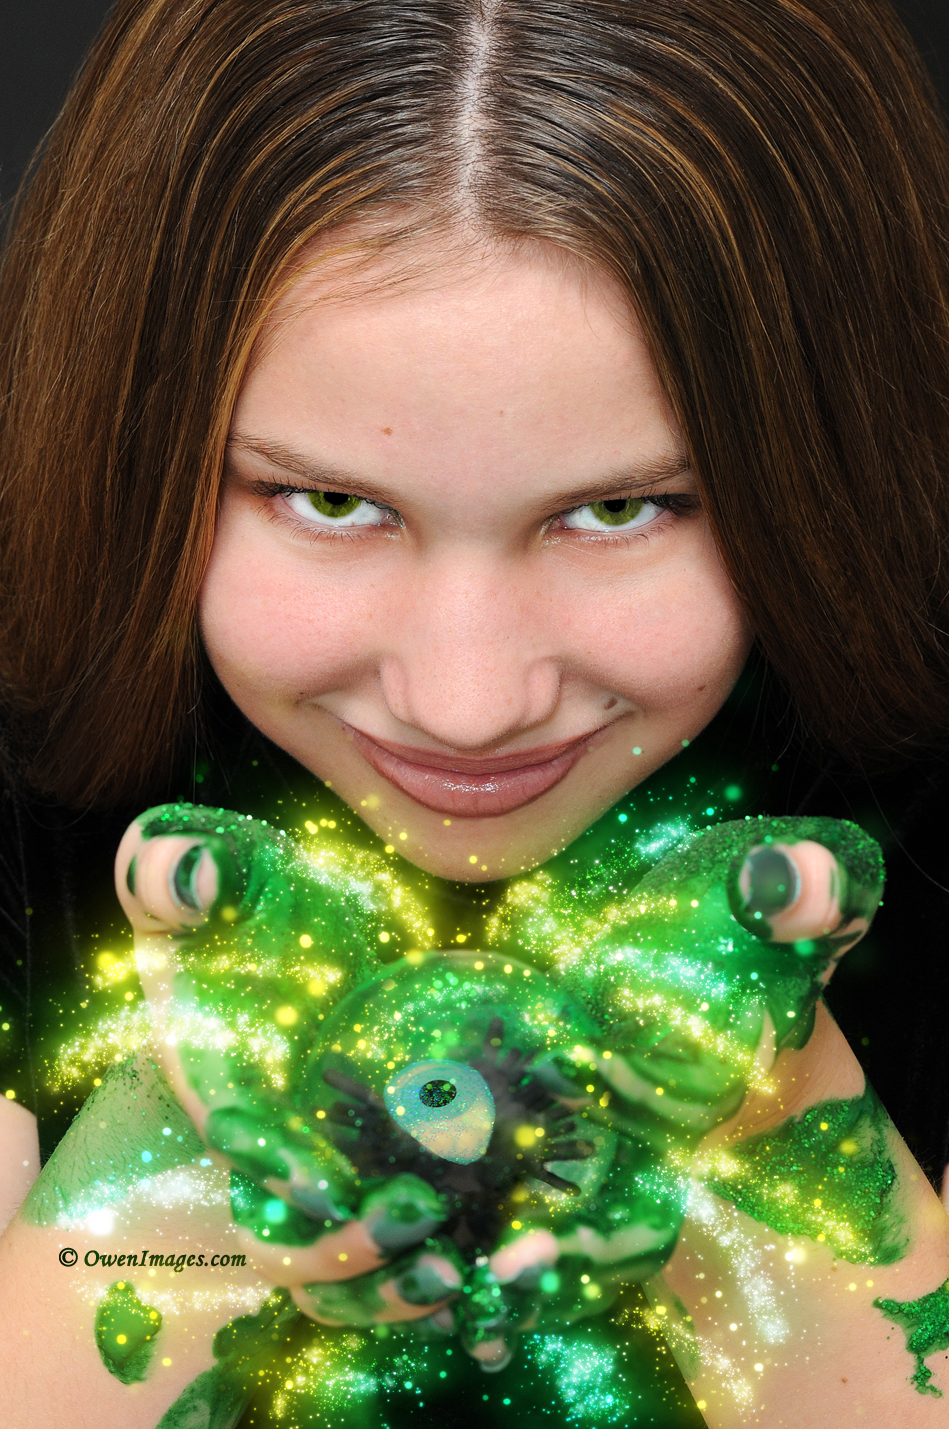 Creative Child Portrait with Eye of the Beholder by @OwenImages